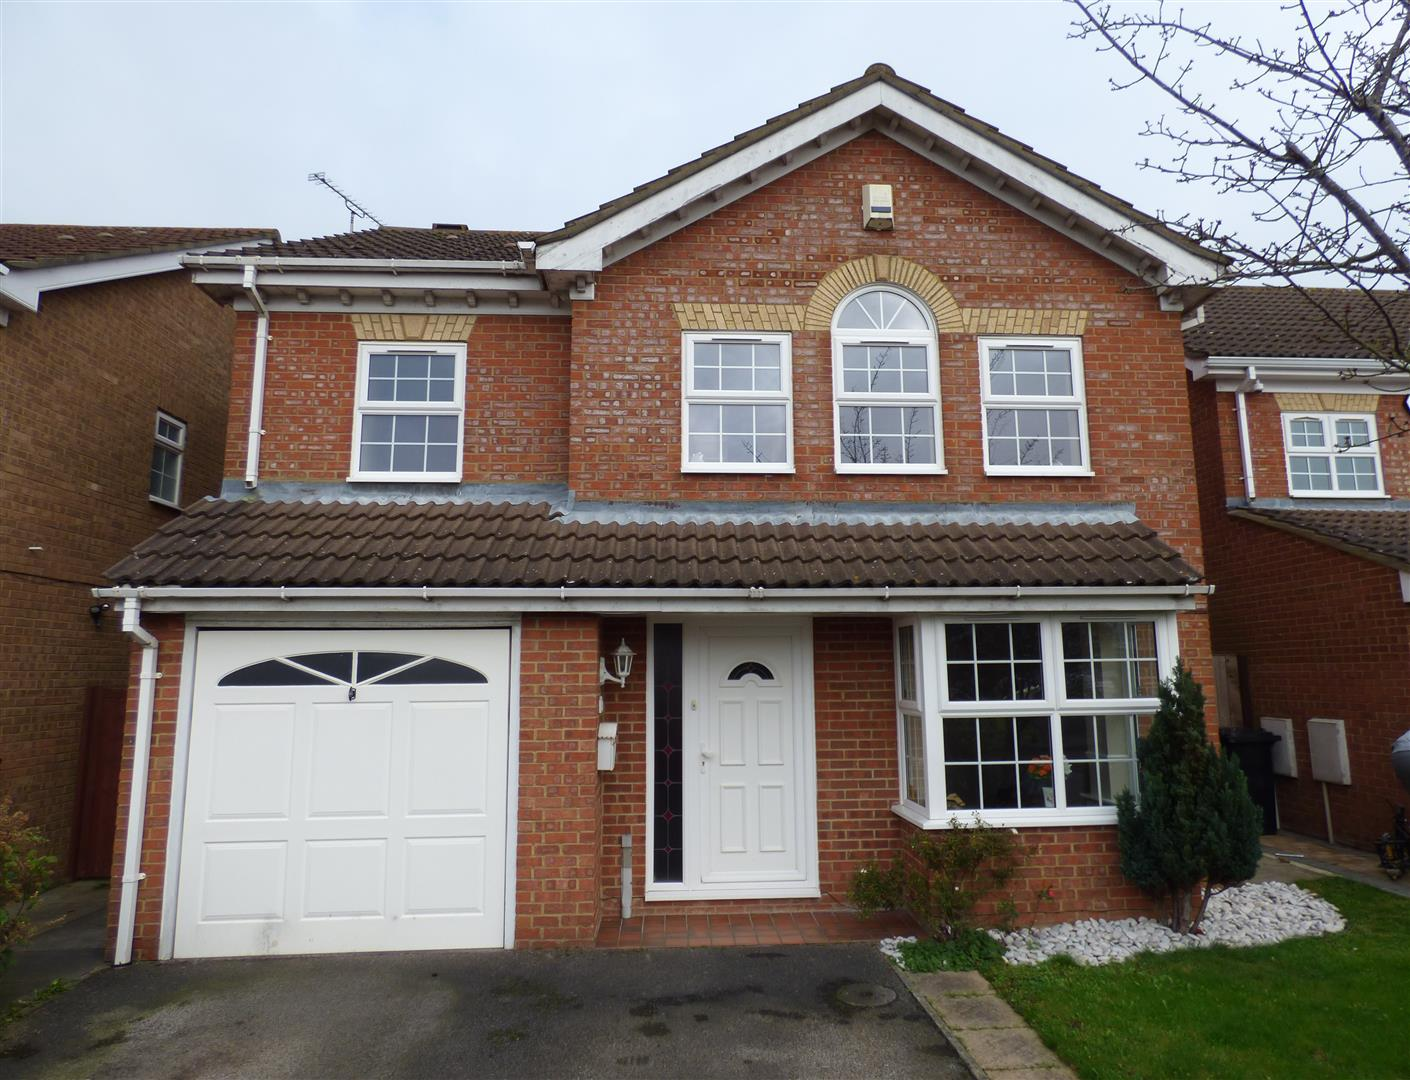 4 Bedrooms Detached House for sale in Crabtree Way, Dunstable